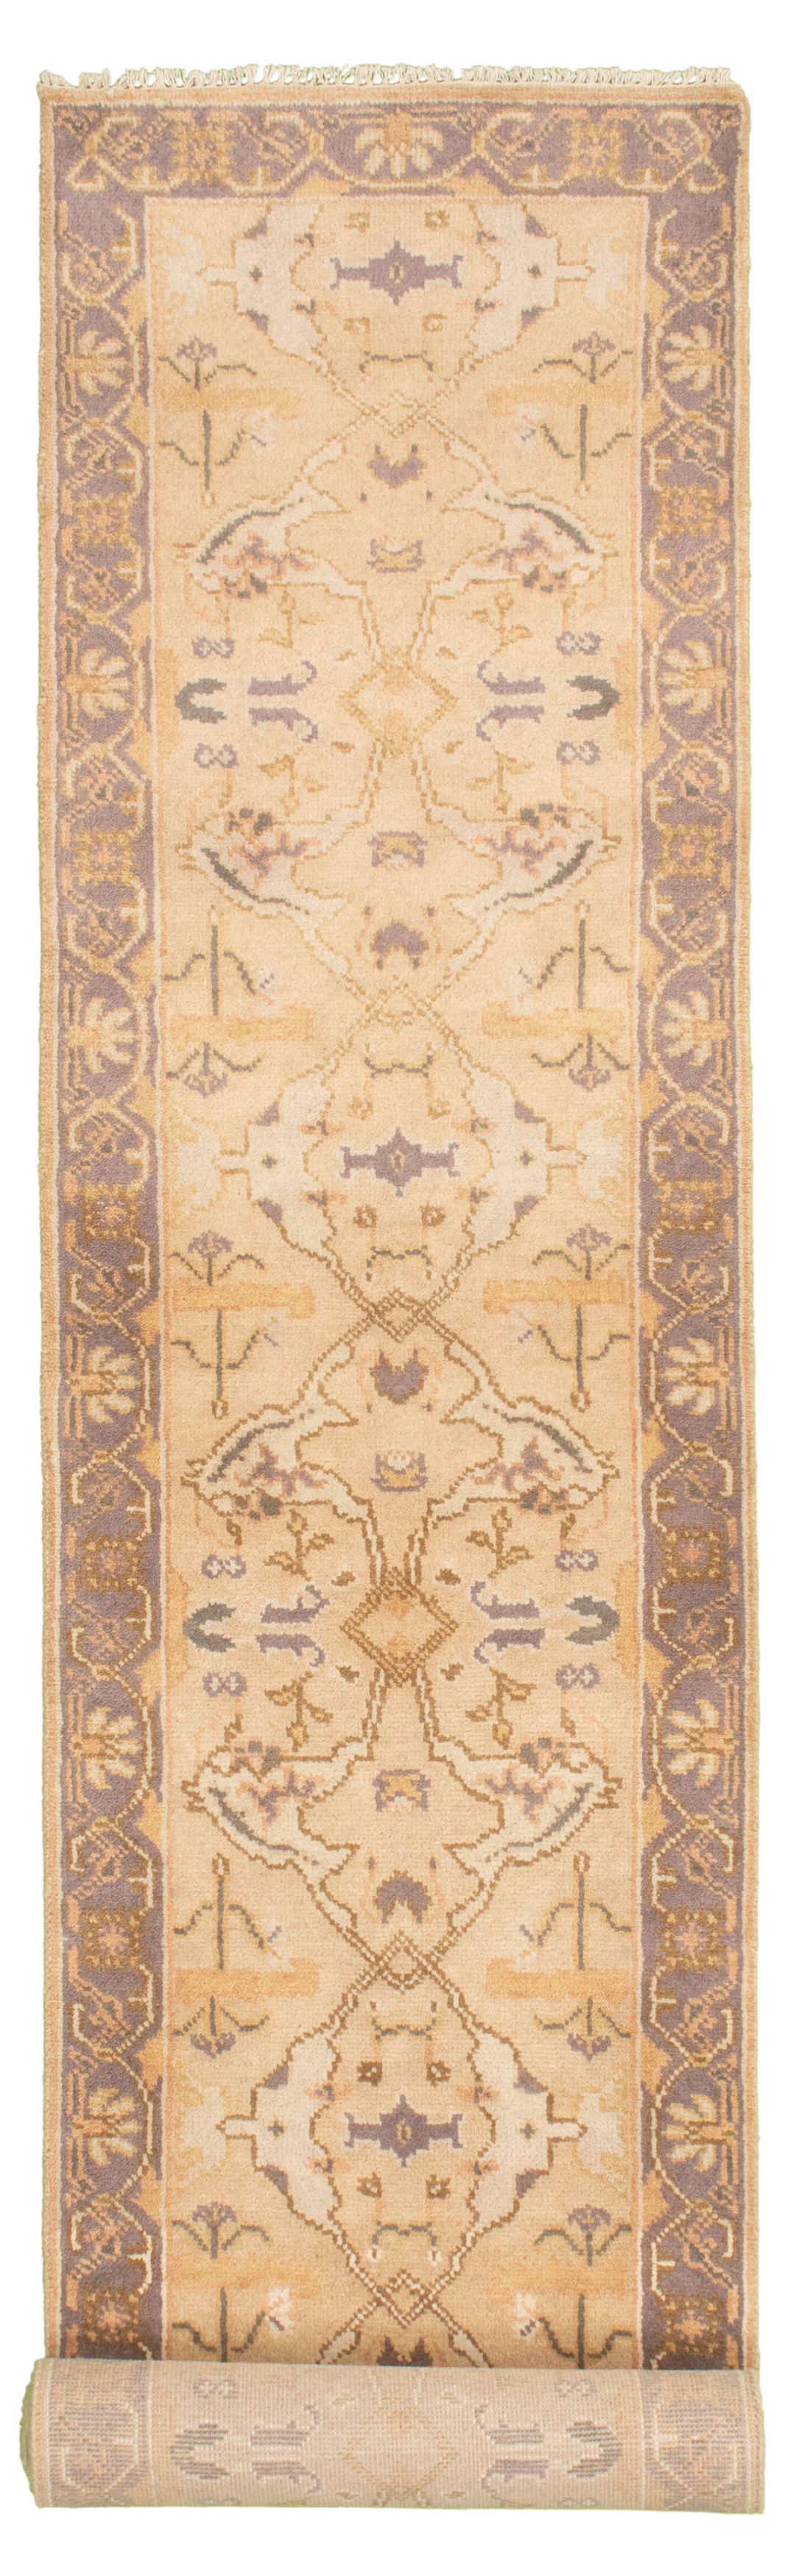 """Hand-knotted Royal Ushak Beige Wool Rug 2'7"""" x 13'10"""" Size: 2'7"""" x 13'10"""""""